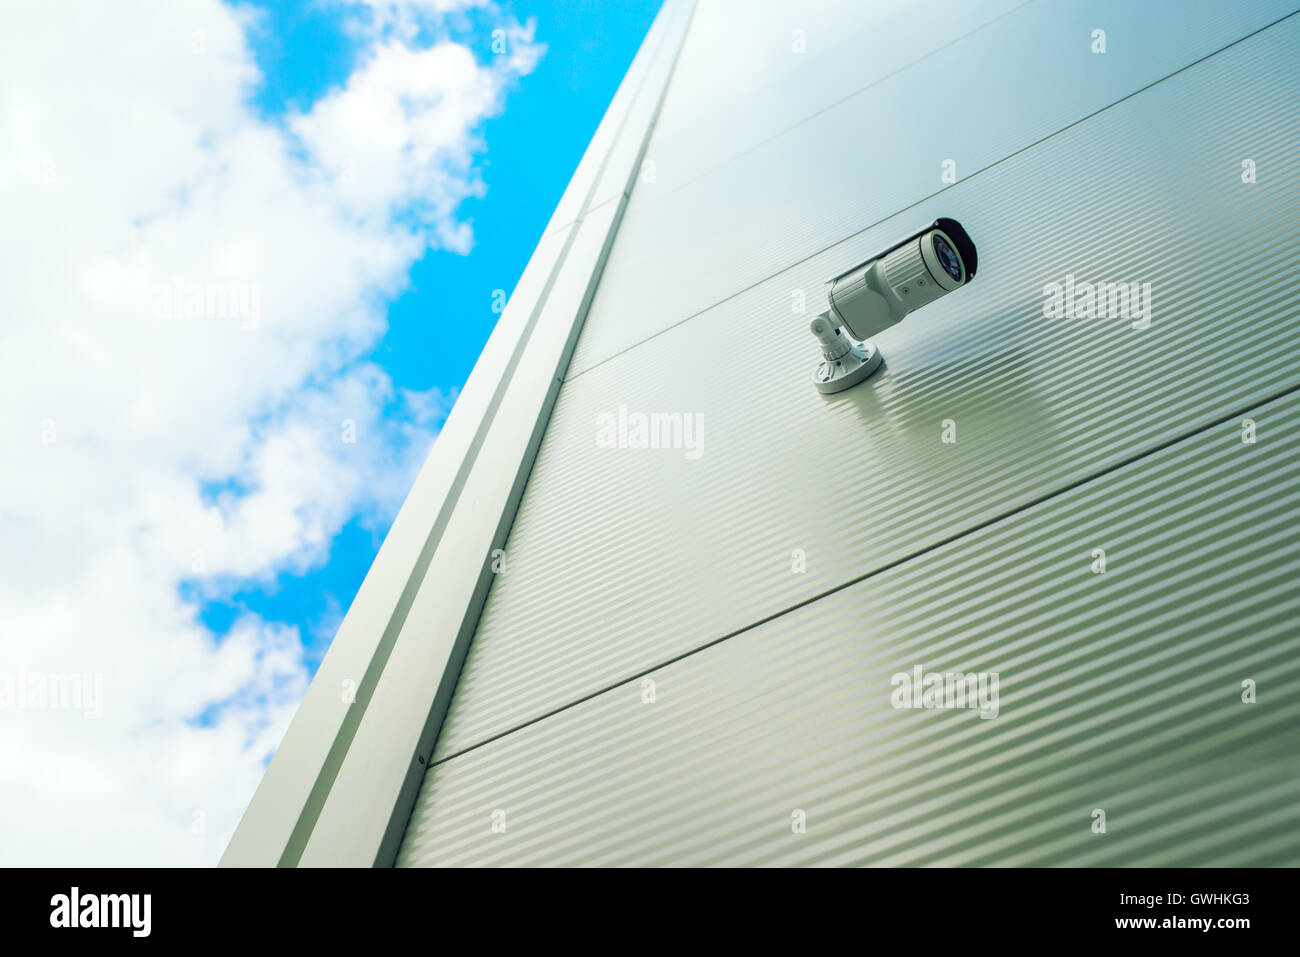 Security surveillance camera on shopping mall exterior wall - Stock Image